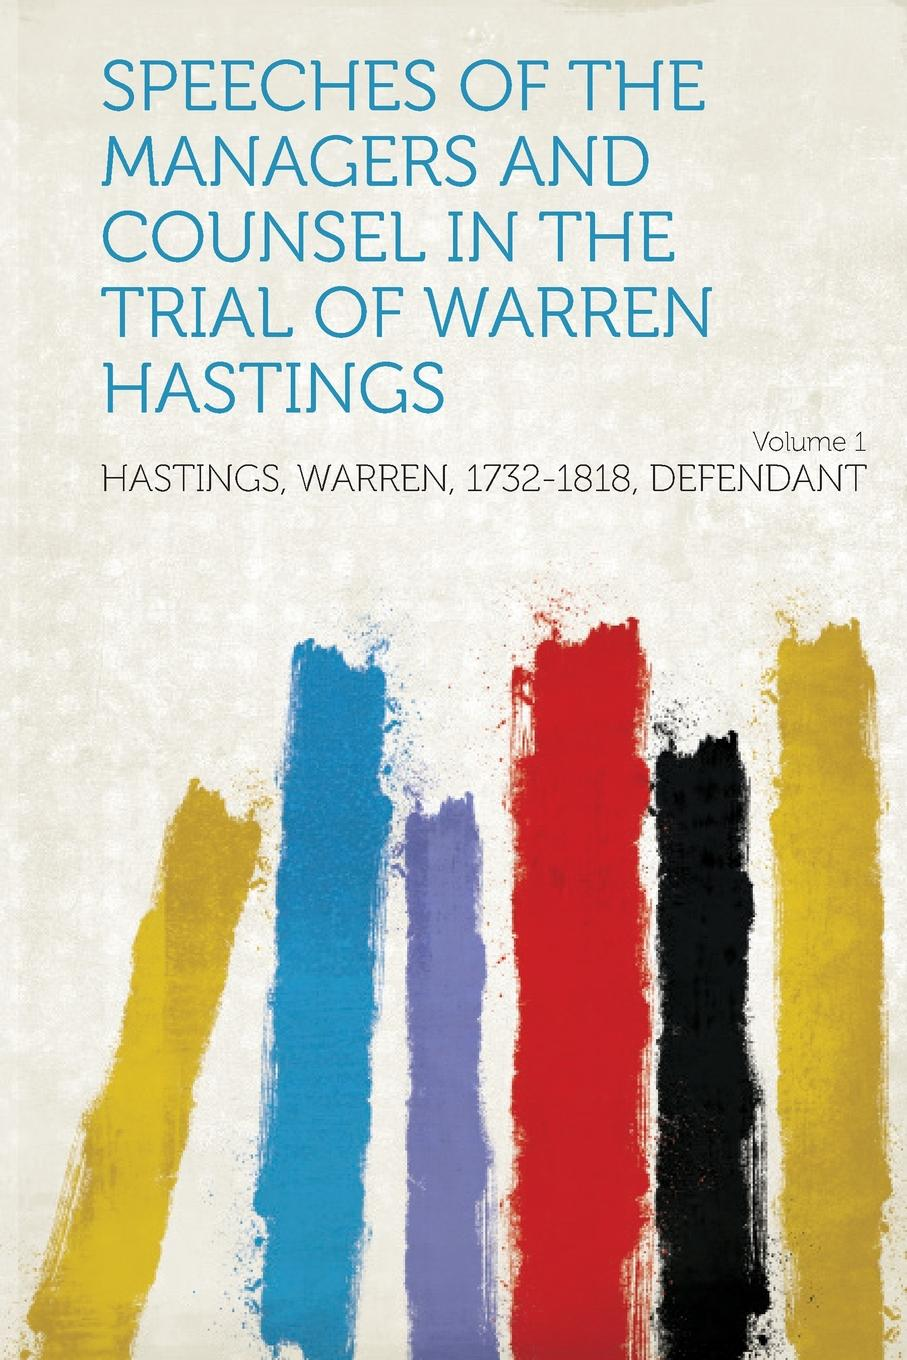 Hastings Warren 1732-1818 Defendant Speeches of the Managers and Counsel in the Trial of Warren Hastings Volume 1 long john silver volume 1 lady vivian hastings